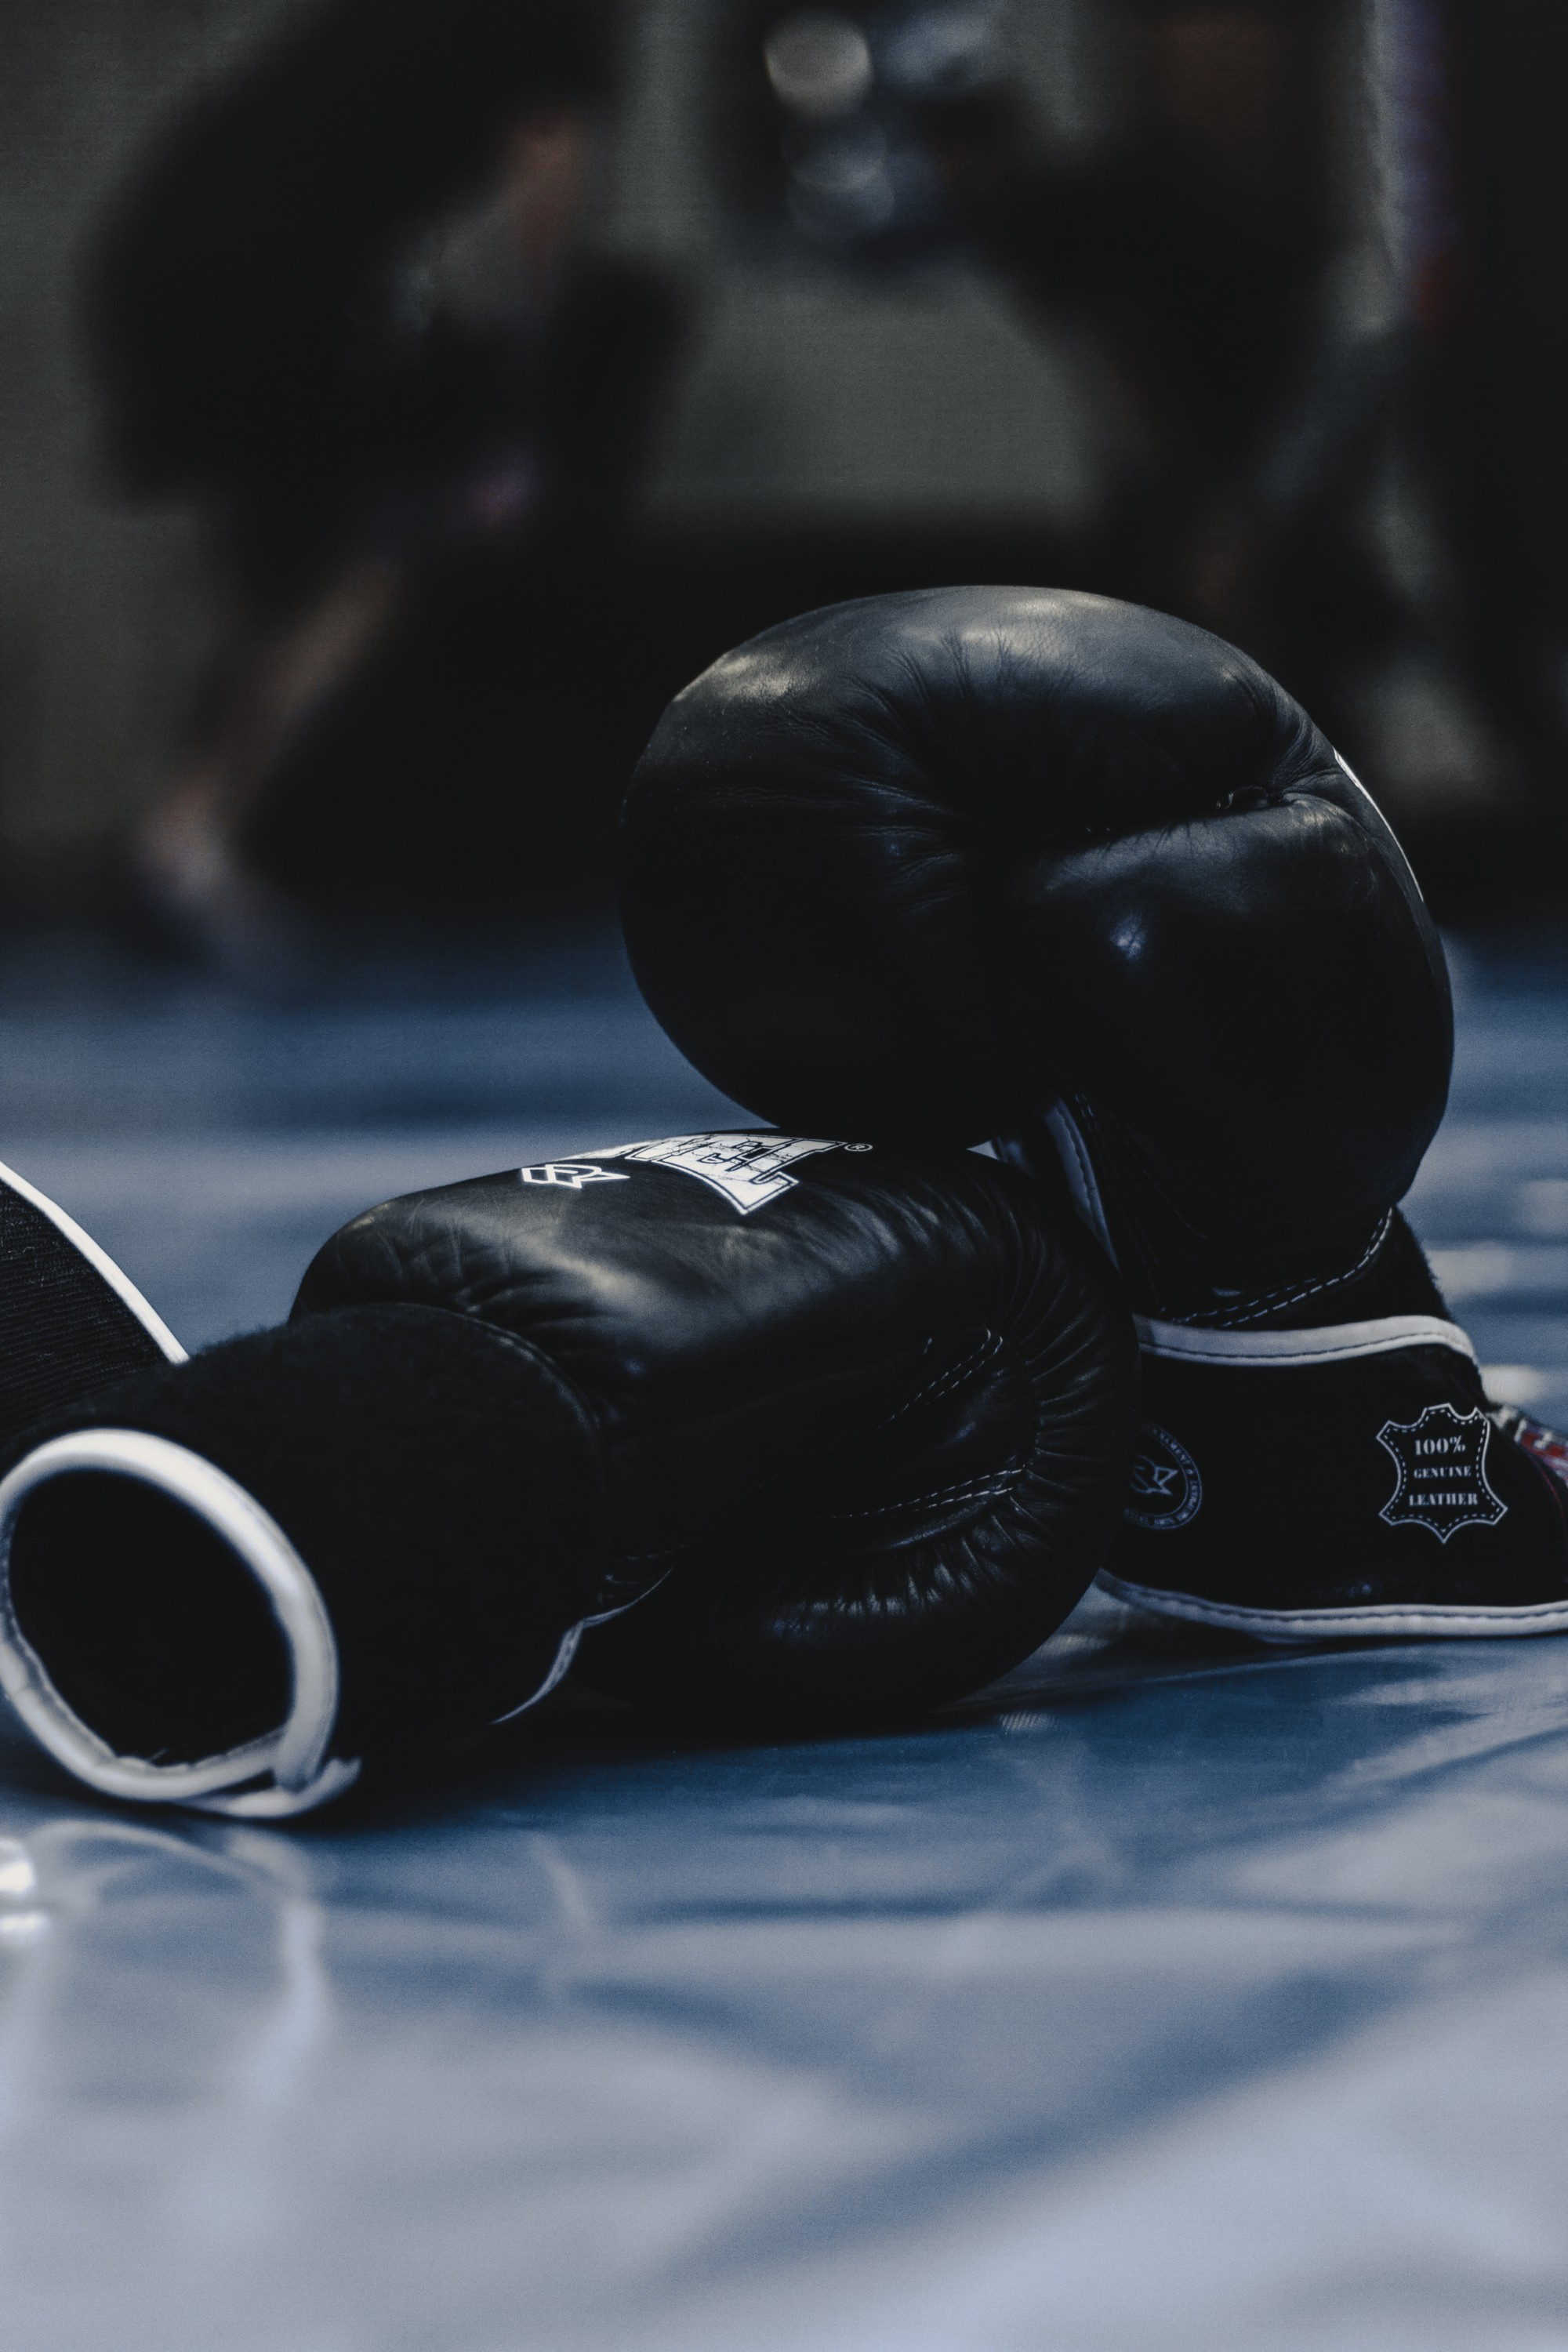 A pair of black boxing gloves